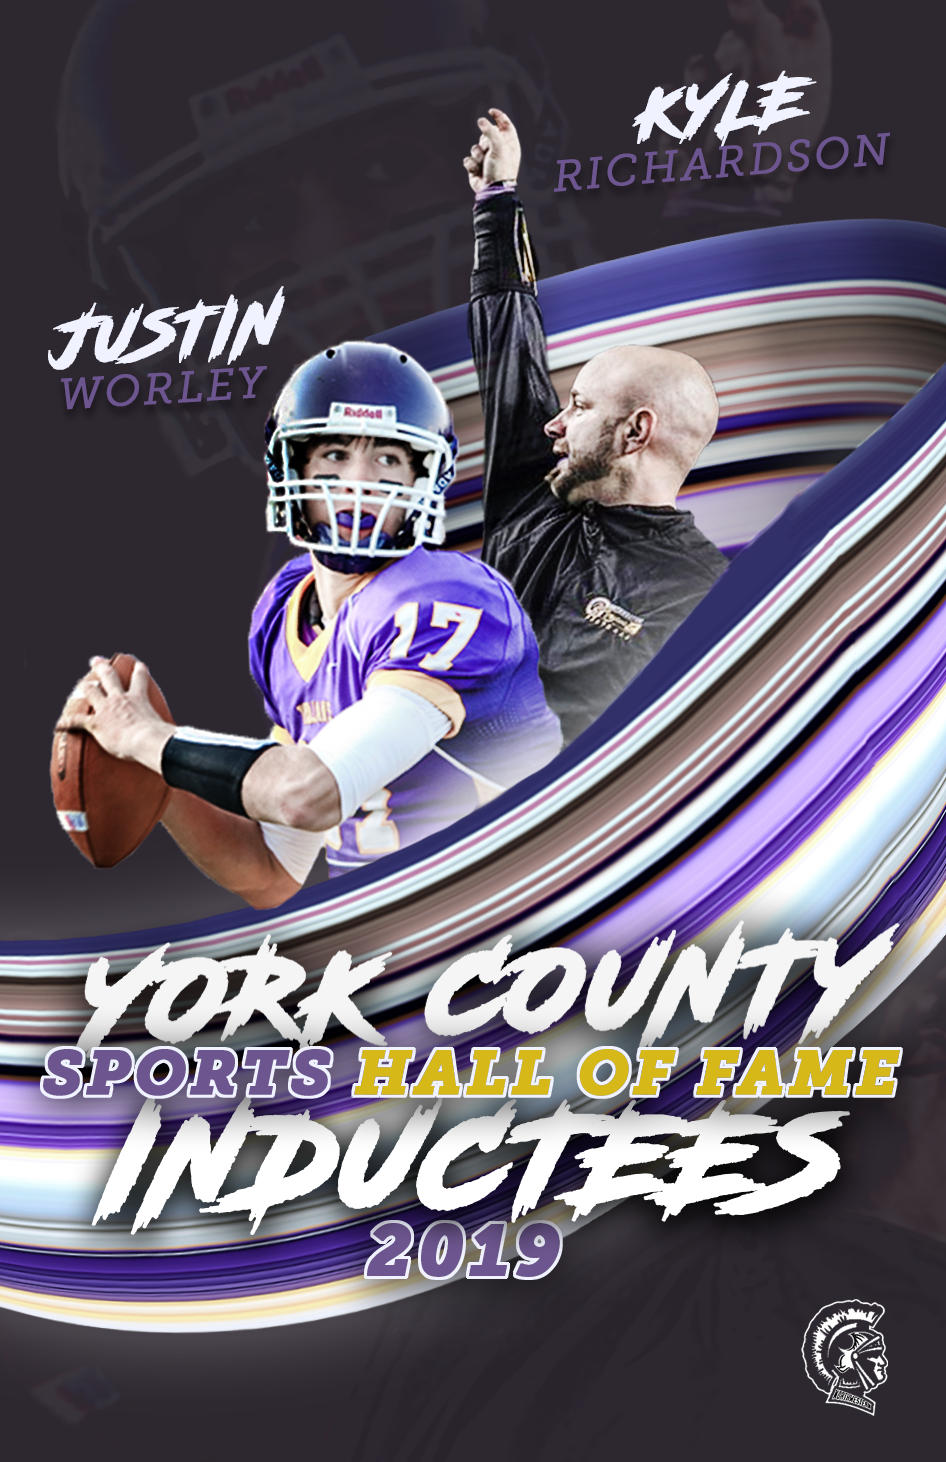 York County Sports HOF 2019 Class includes Richardson & Worley